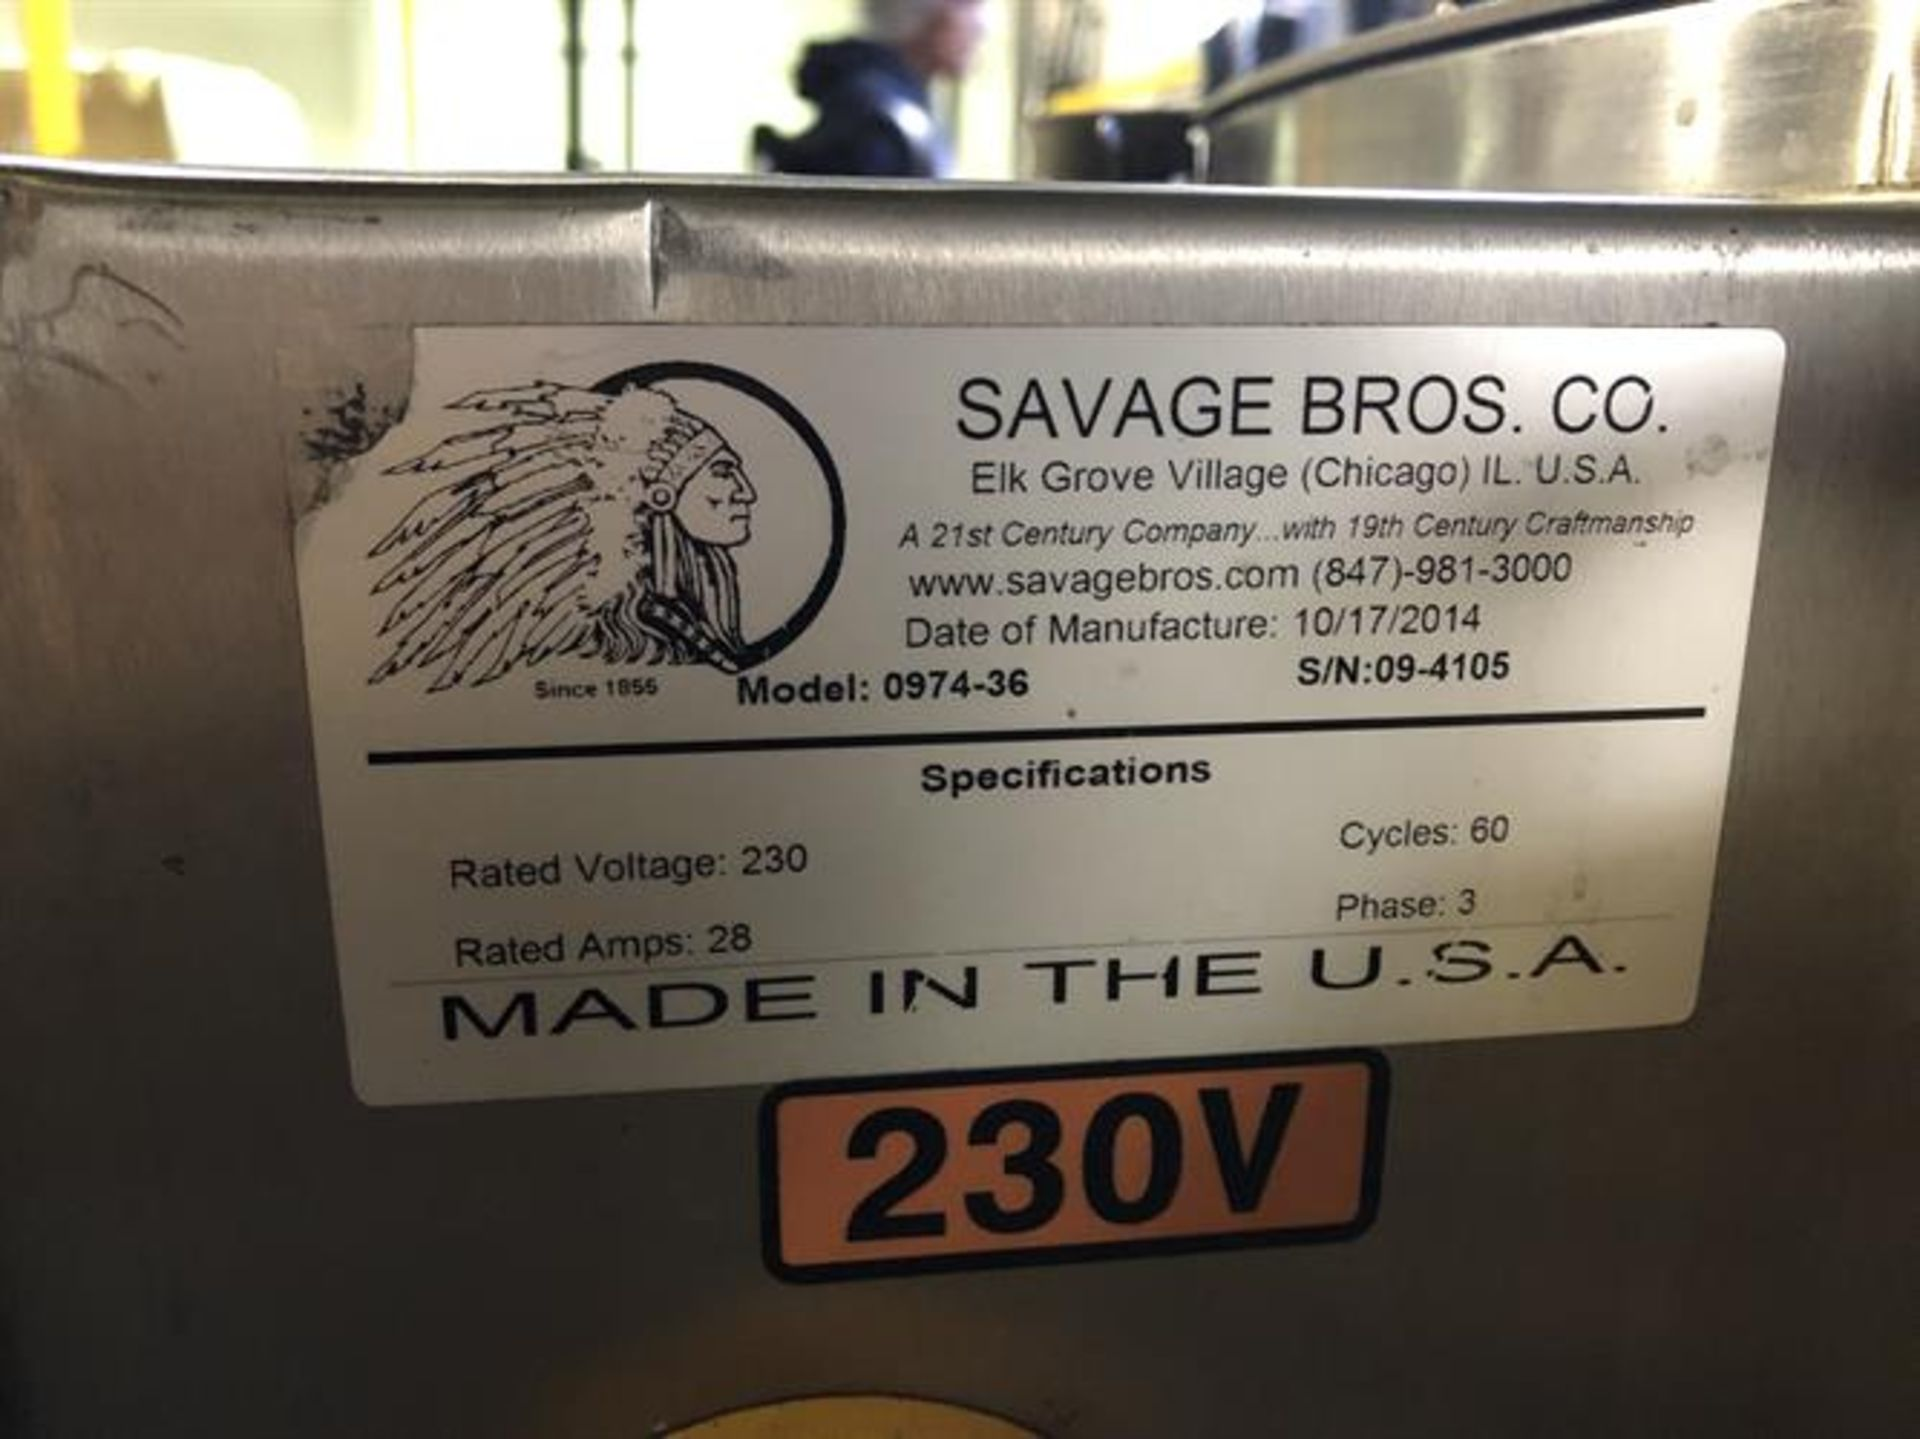 Savage 1250-lb Stainless Steel Chocolate Melter - model 0974-36, with PLC touchscreen controls - - Image 8 of 8